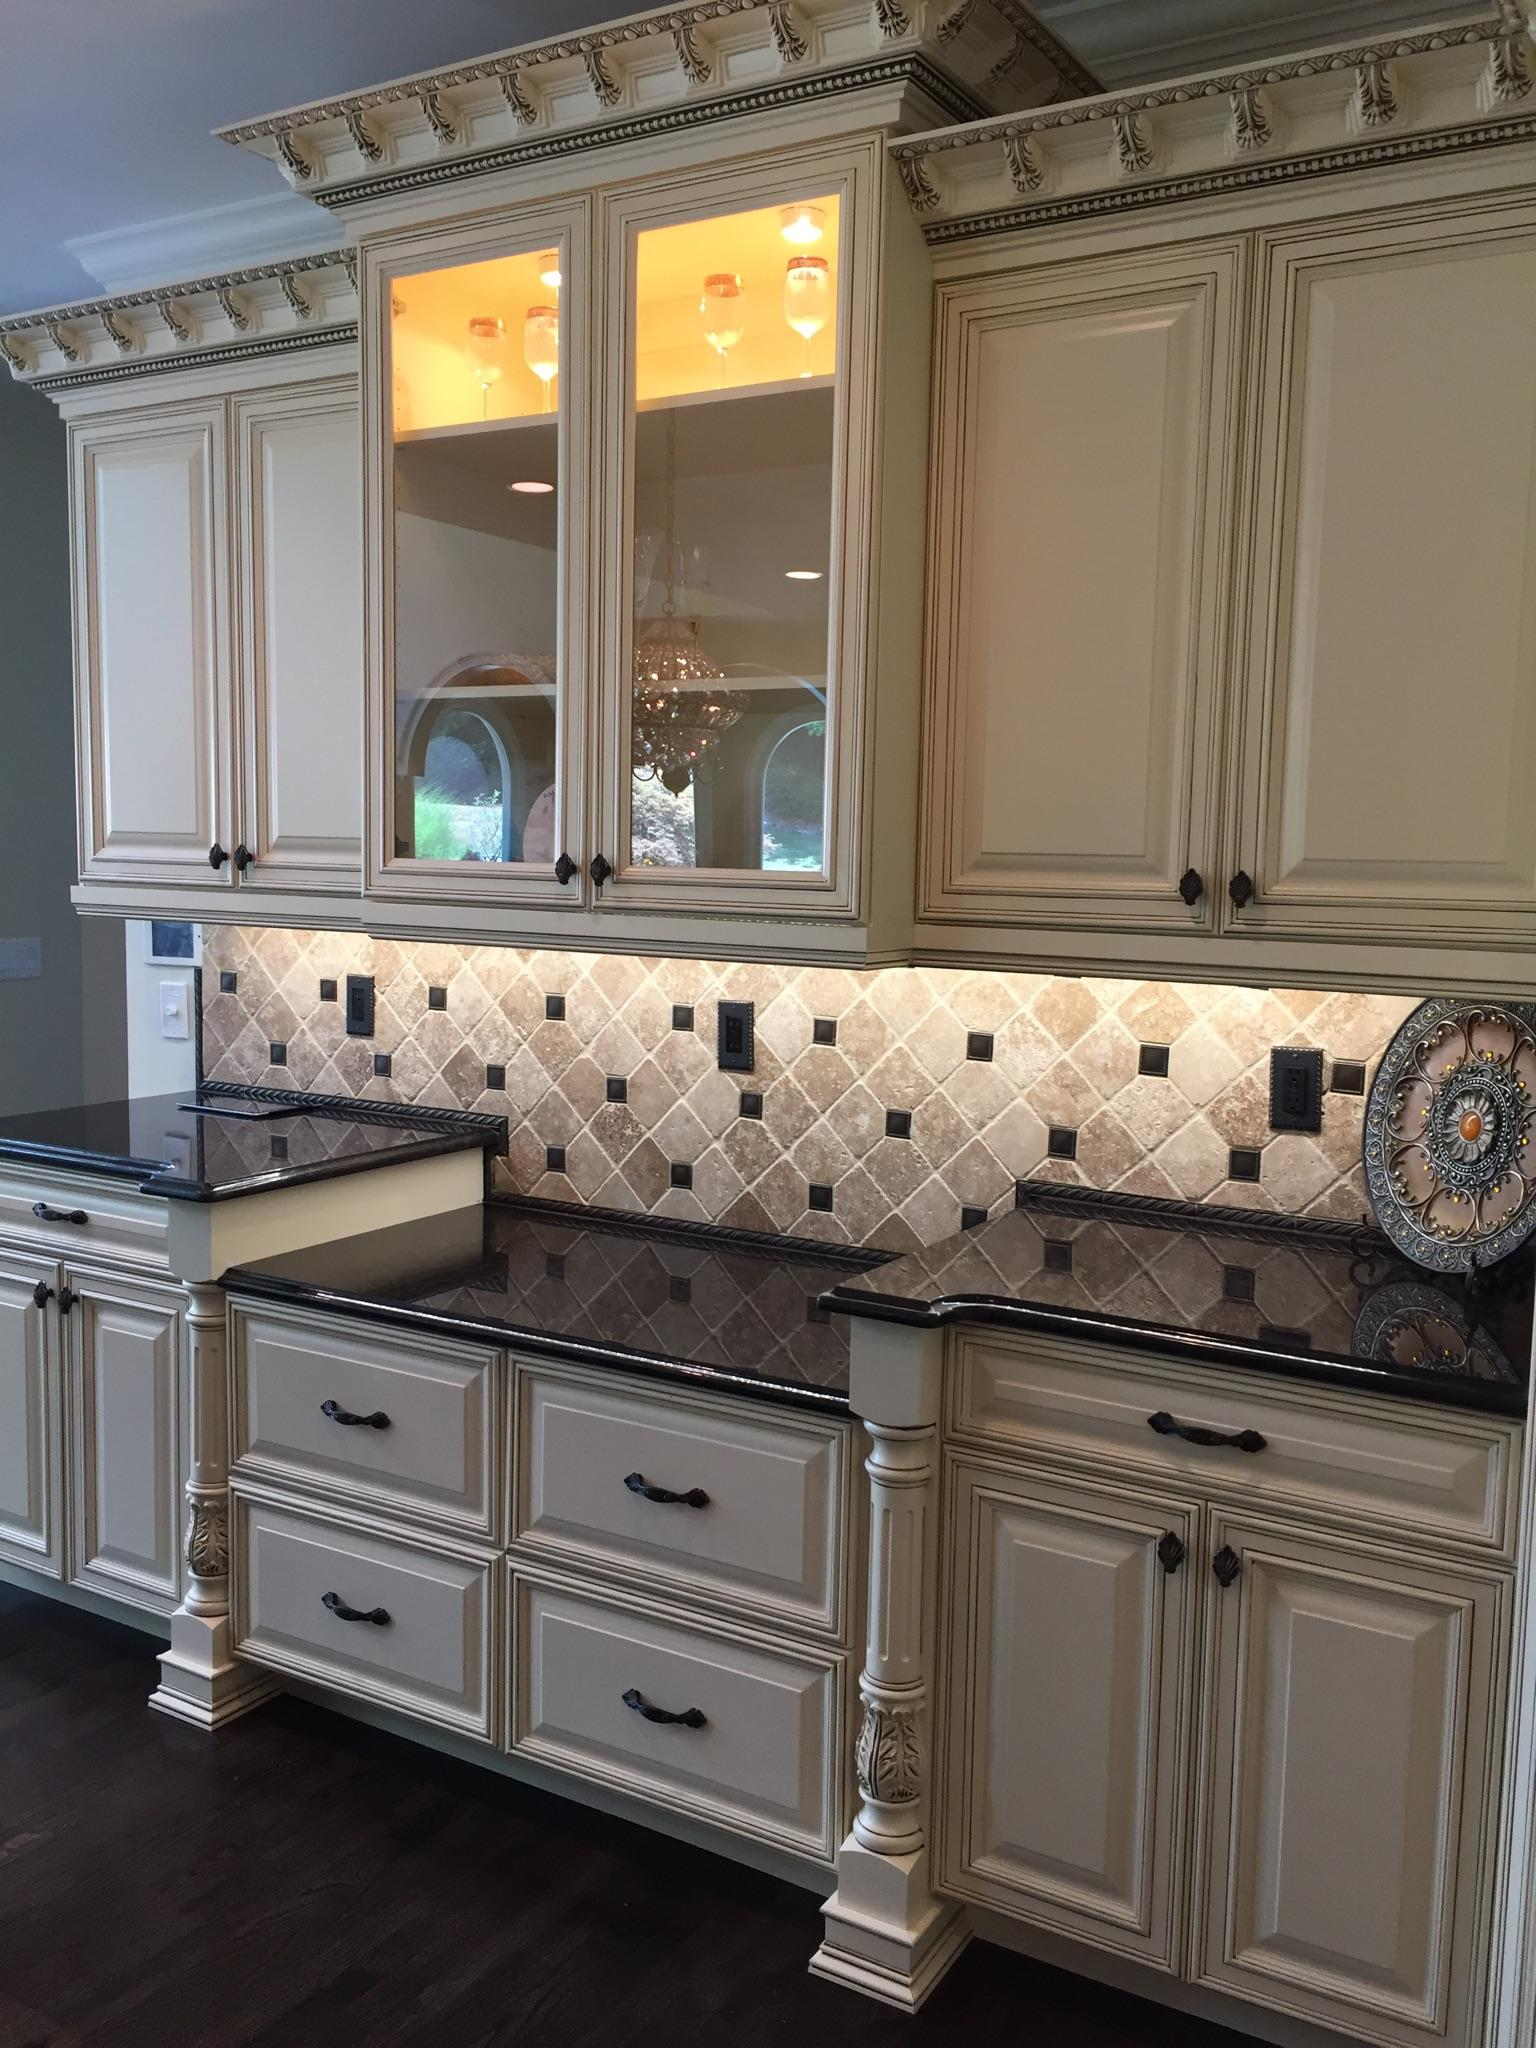 Imperial Design Cabinetry LLC image 25